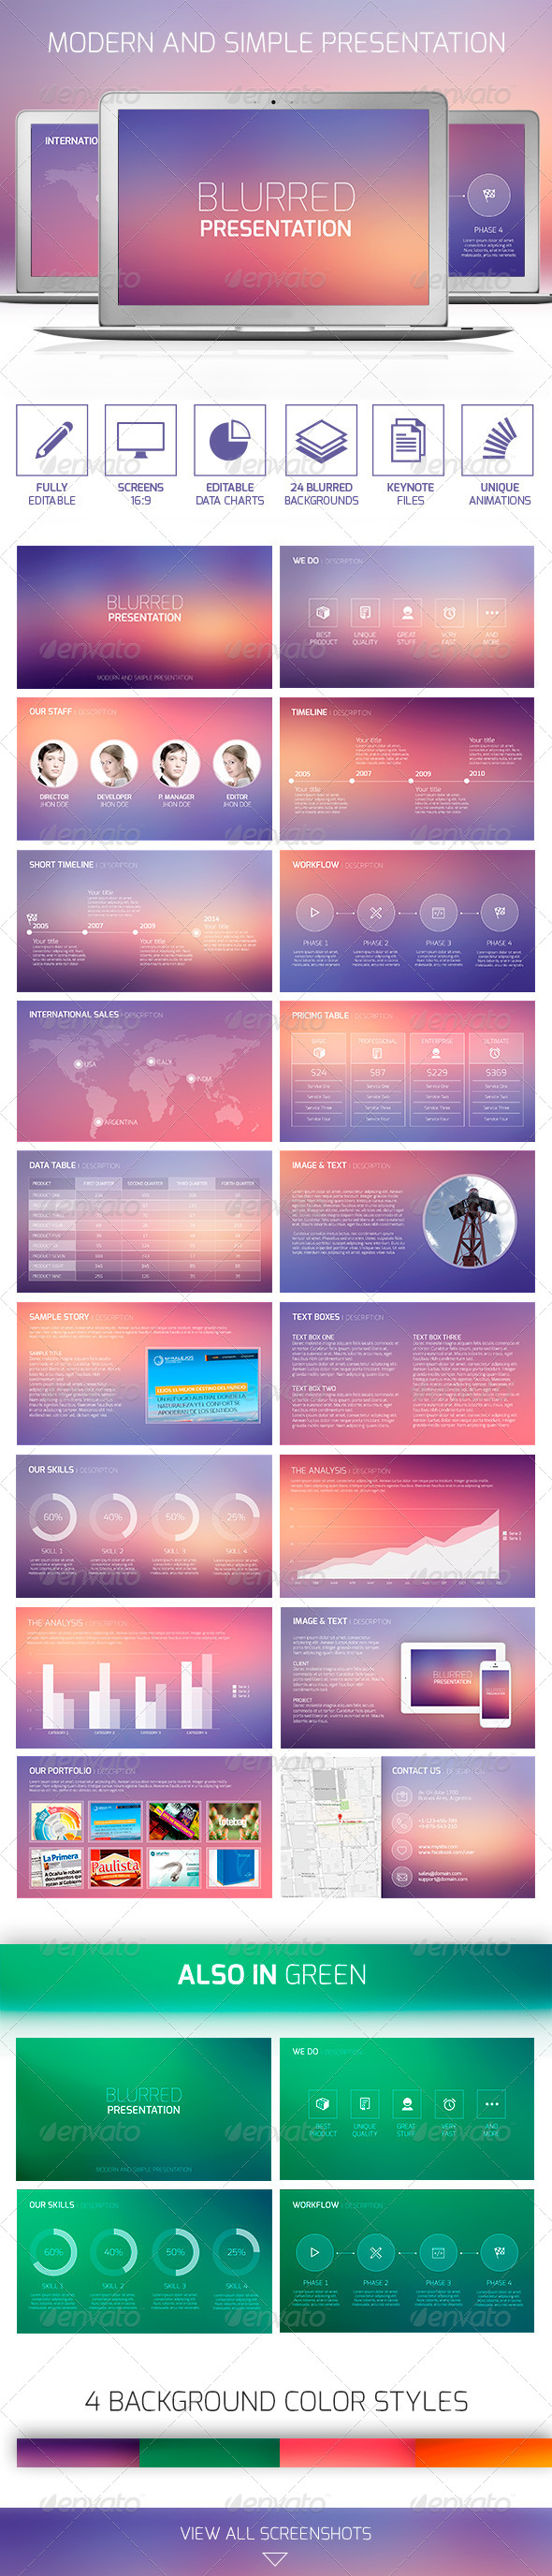 GraphicRiver Blurred Presentation 8646304